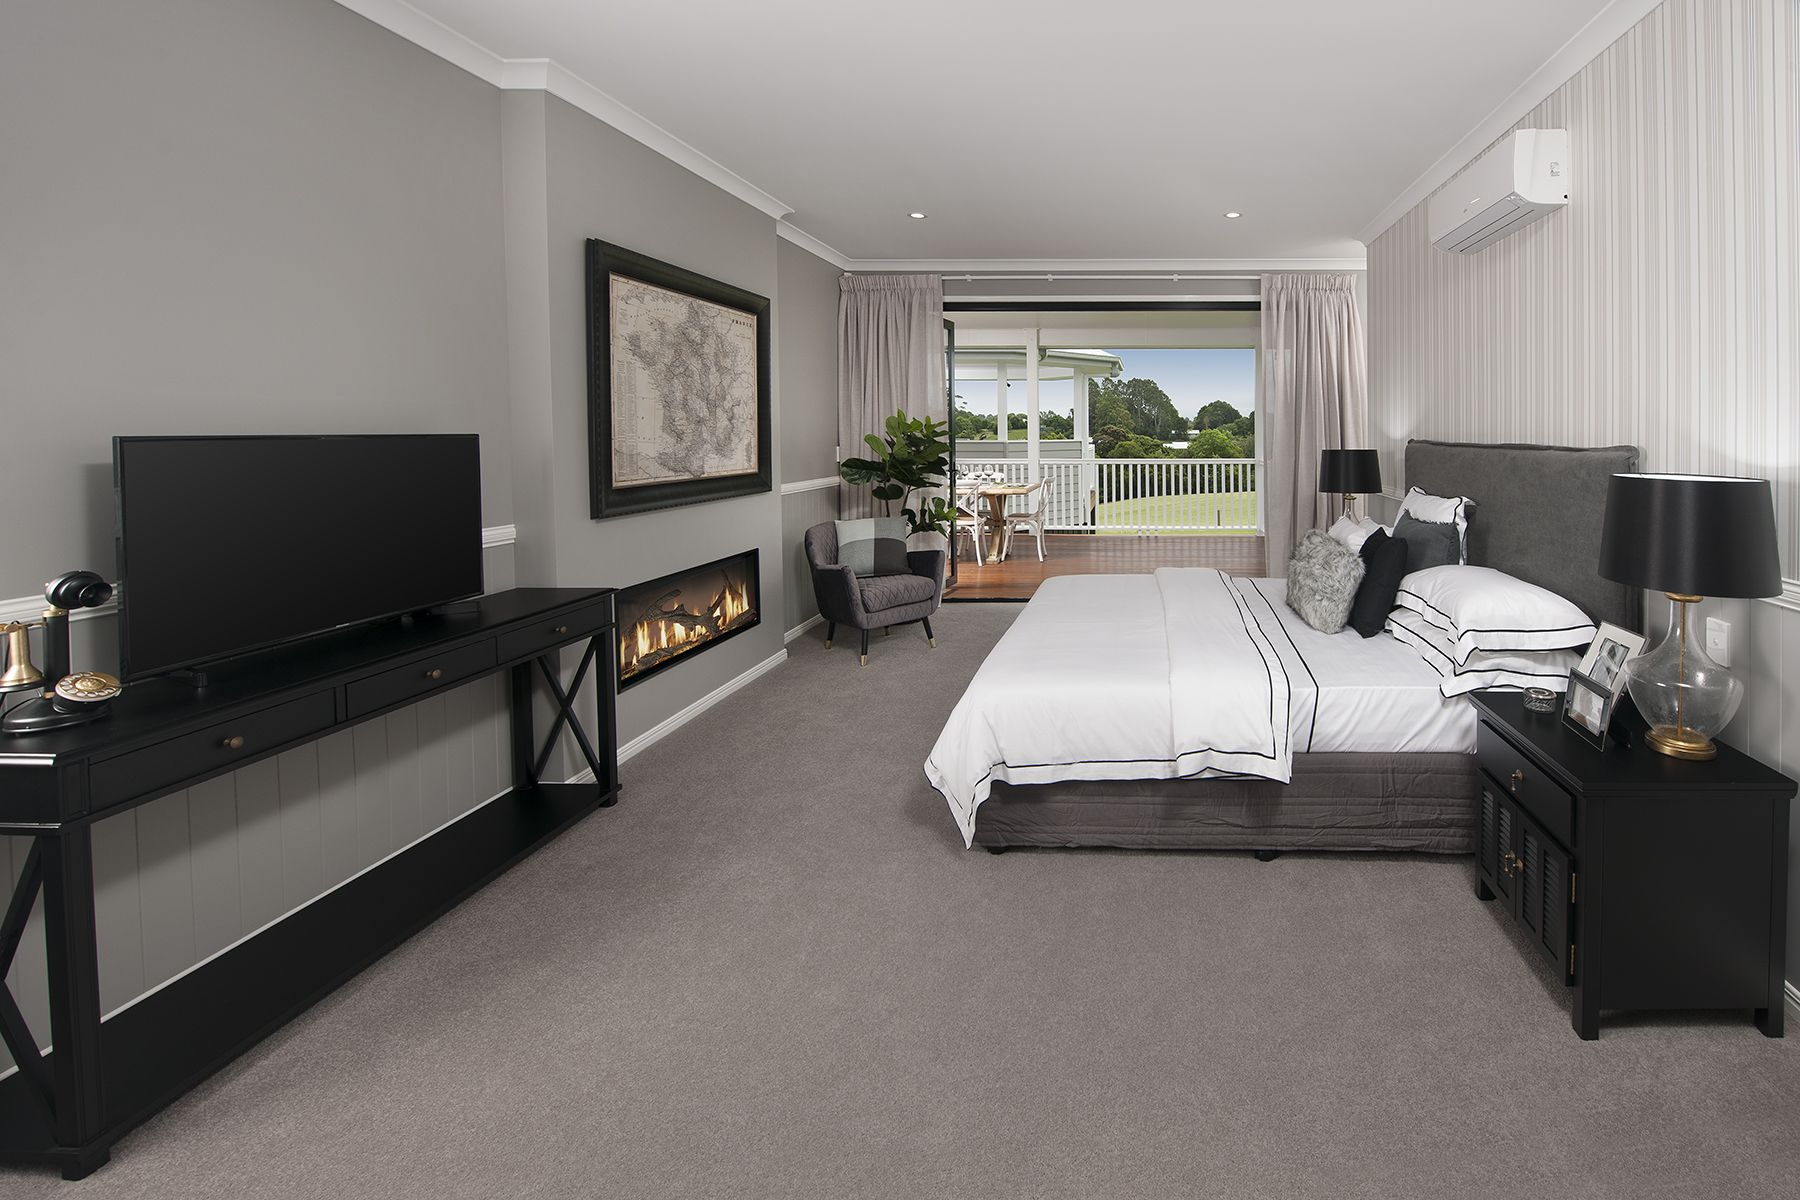 Master Bedroom With Fireplace On A Cold Night